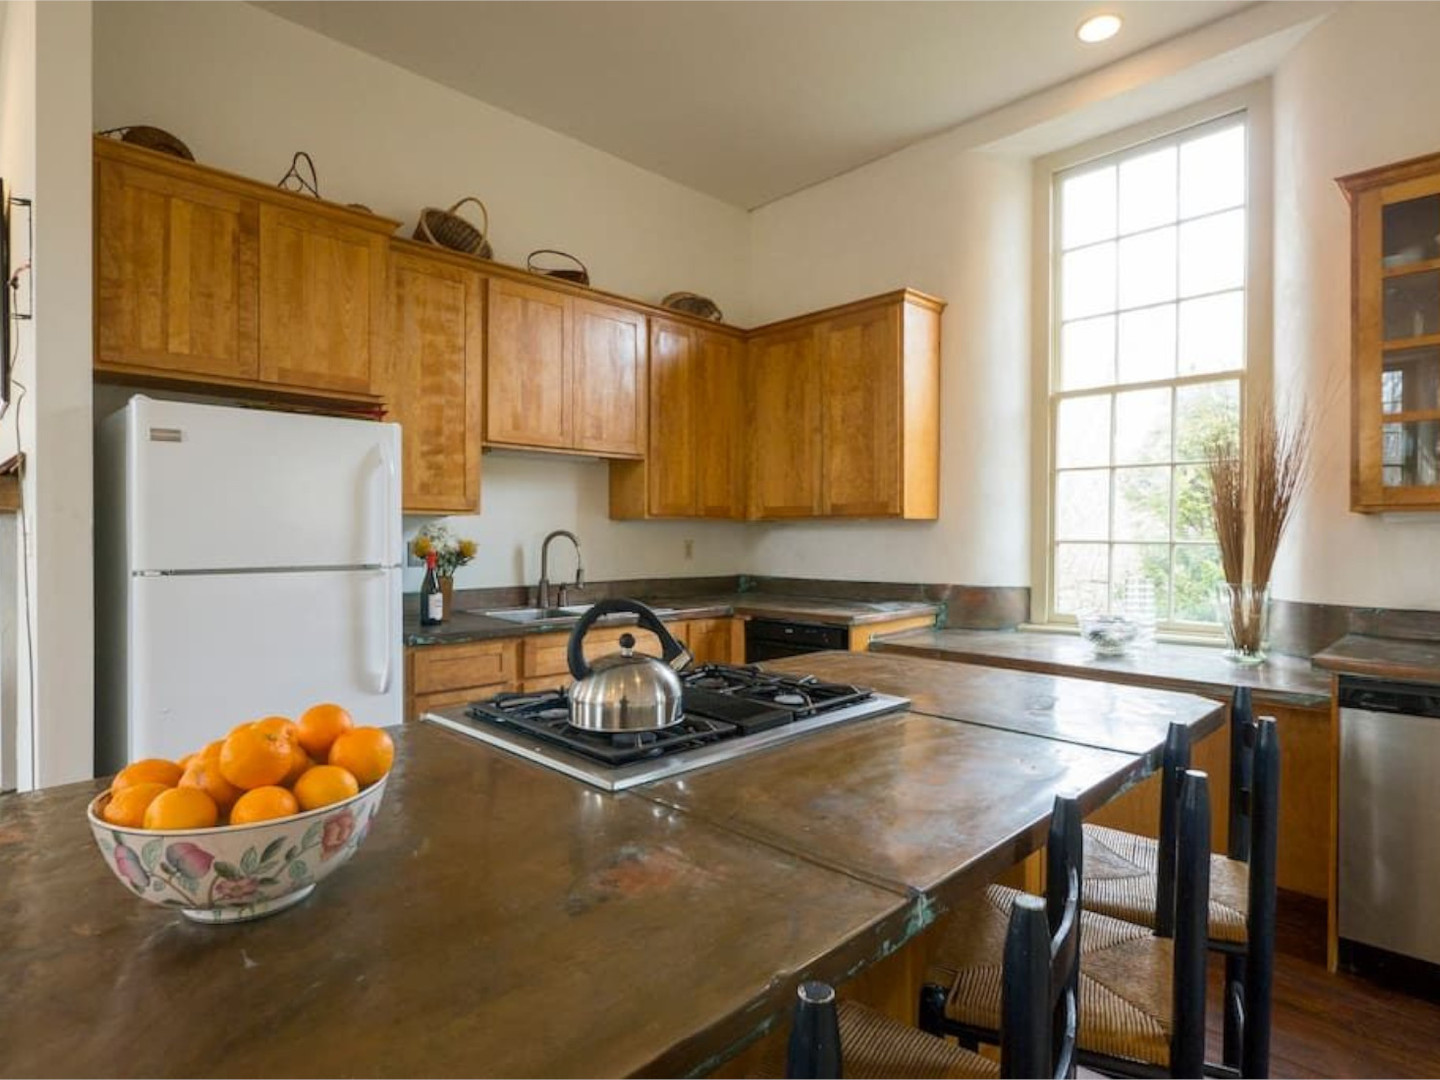 A large kitchen with stainless steel appliances and wooden cabinets at The Buck School Inn.